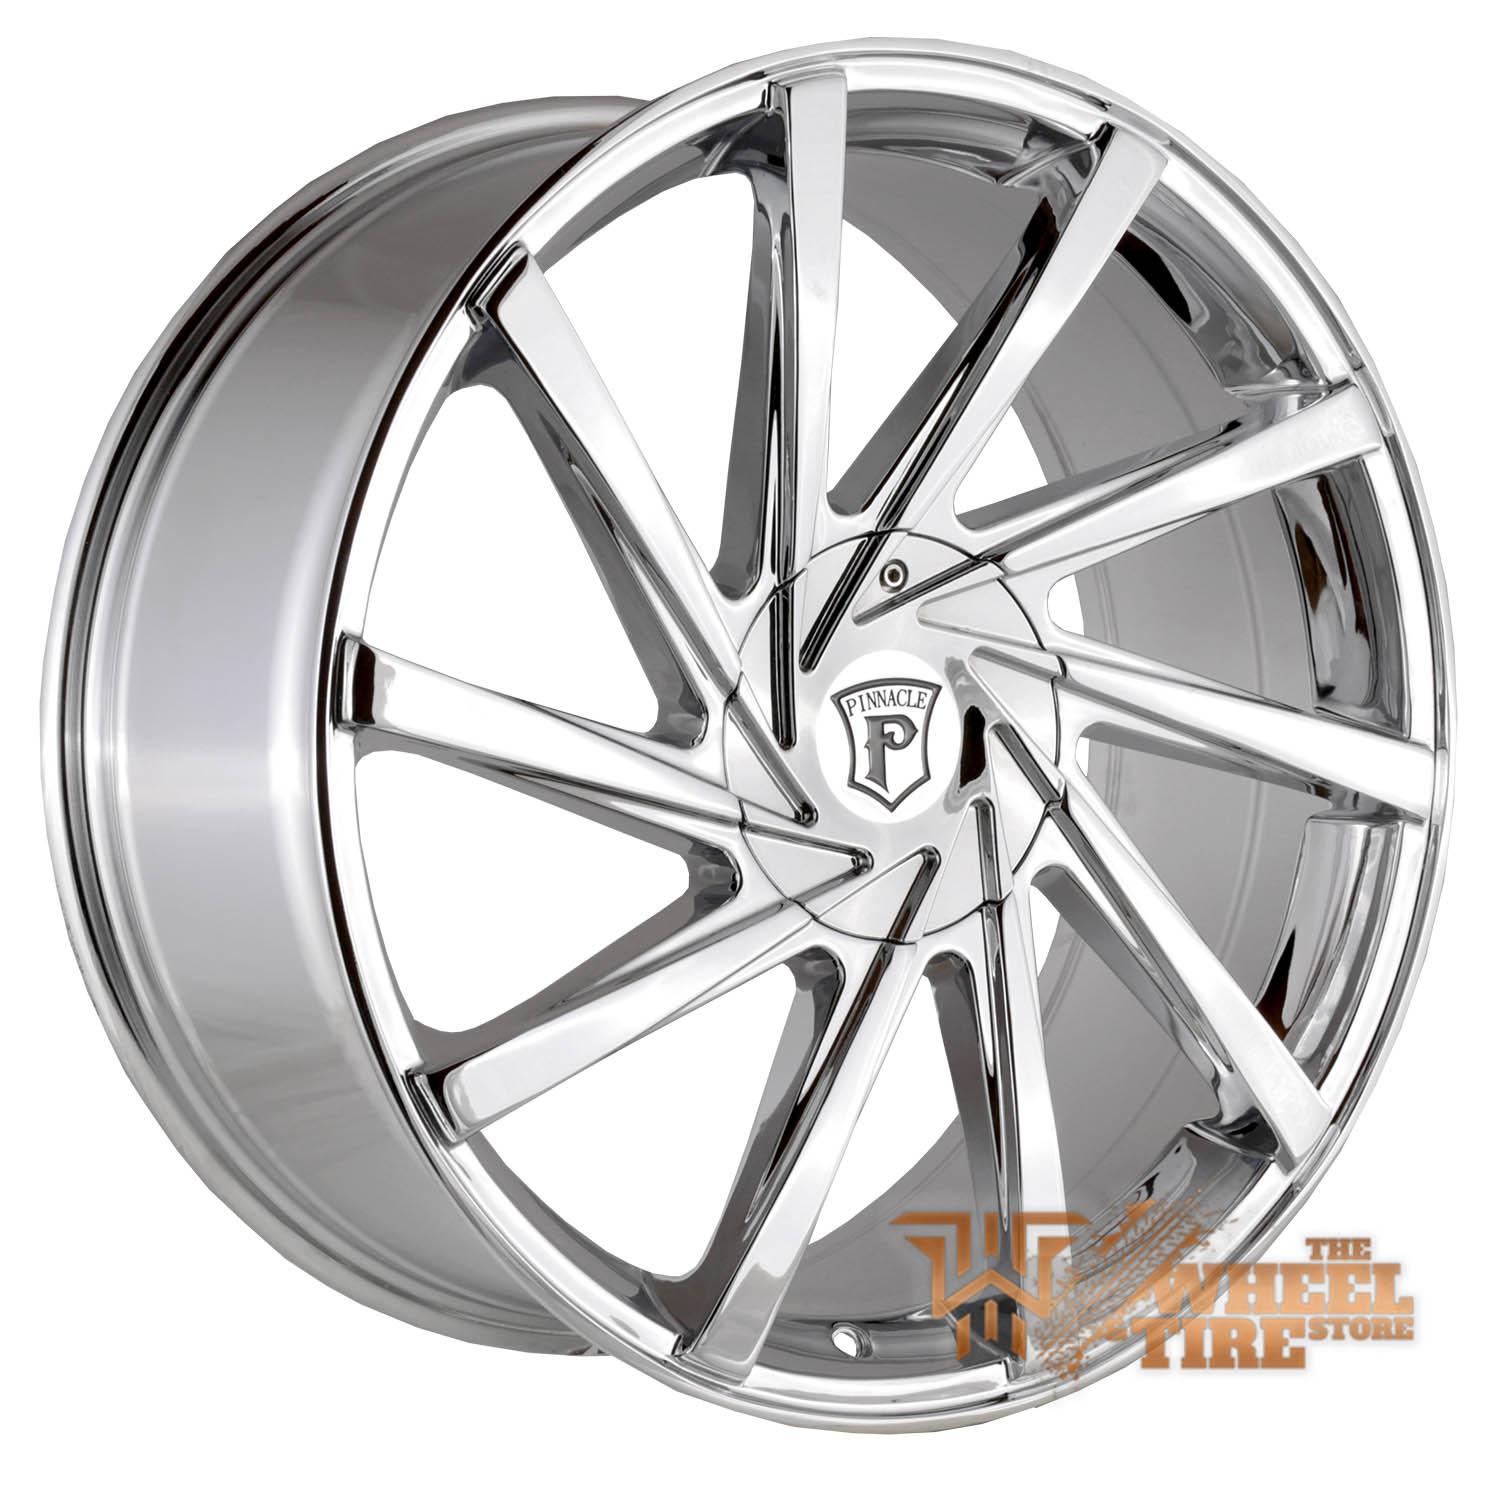 Pinnacle P90 'Turbina' Wheel in Chrome (Set of 4)